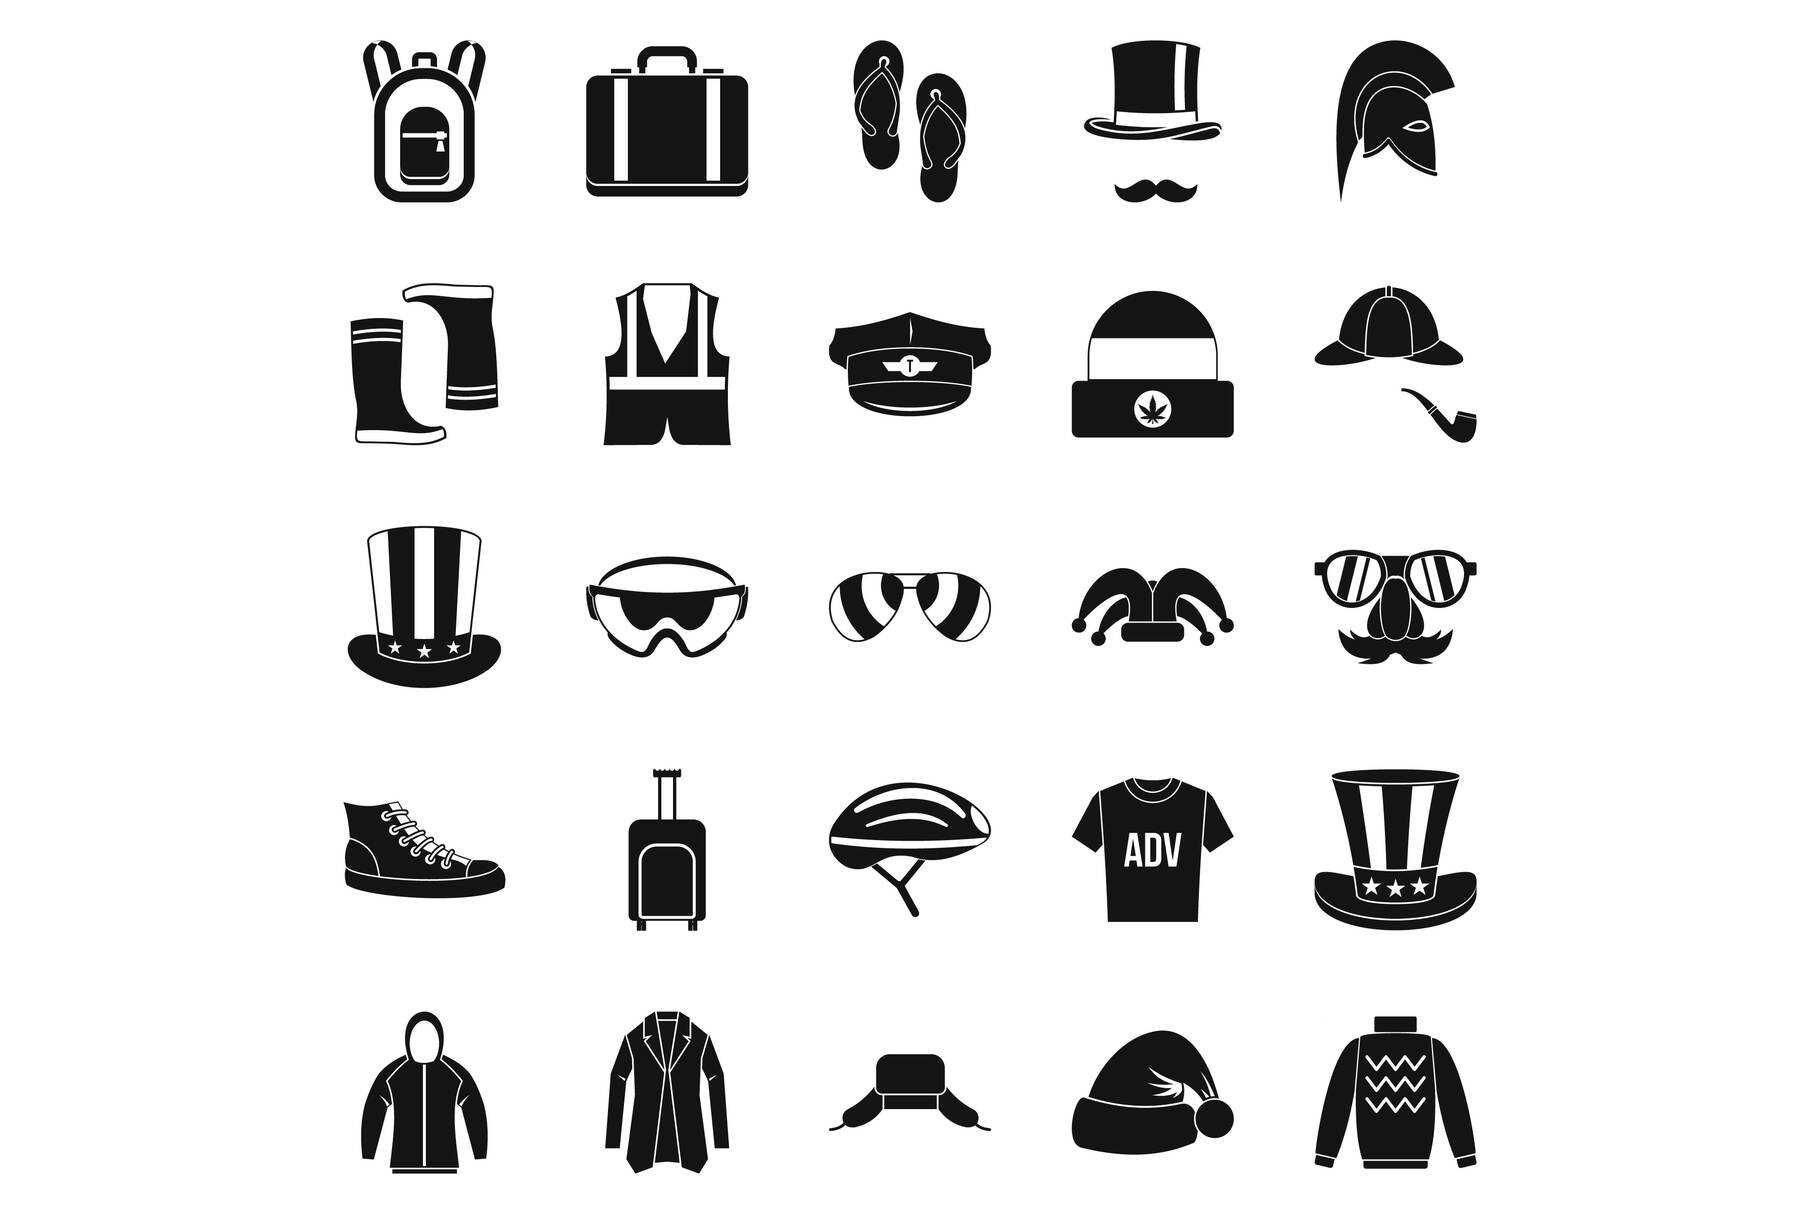 Buying winter clothes icons set, simple style example image 1